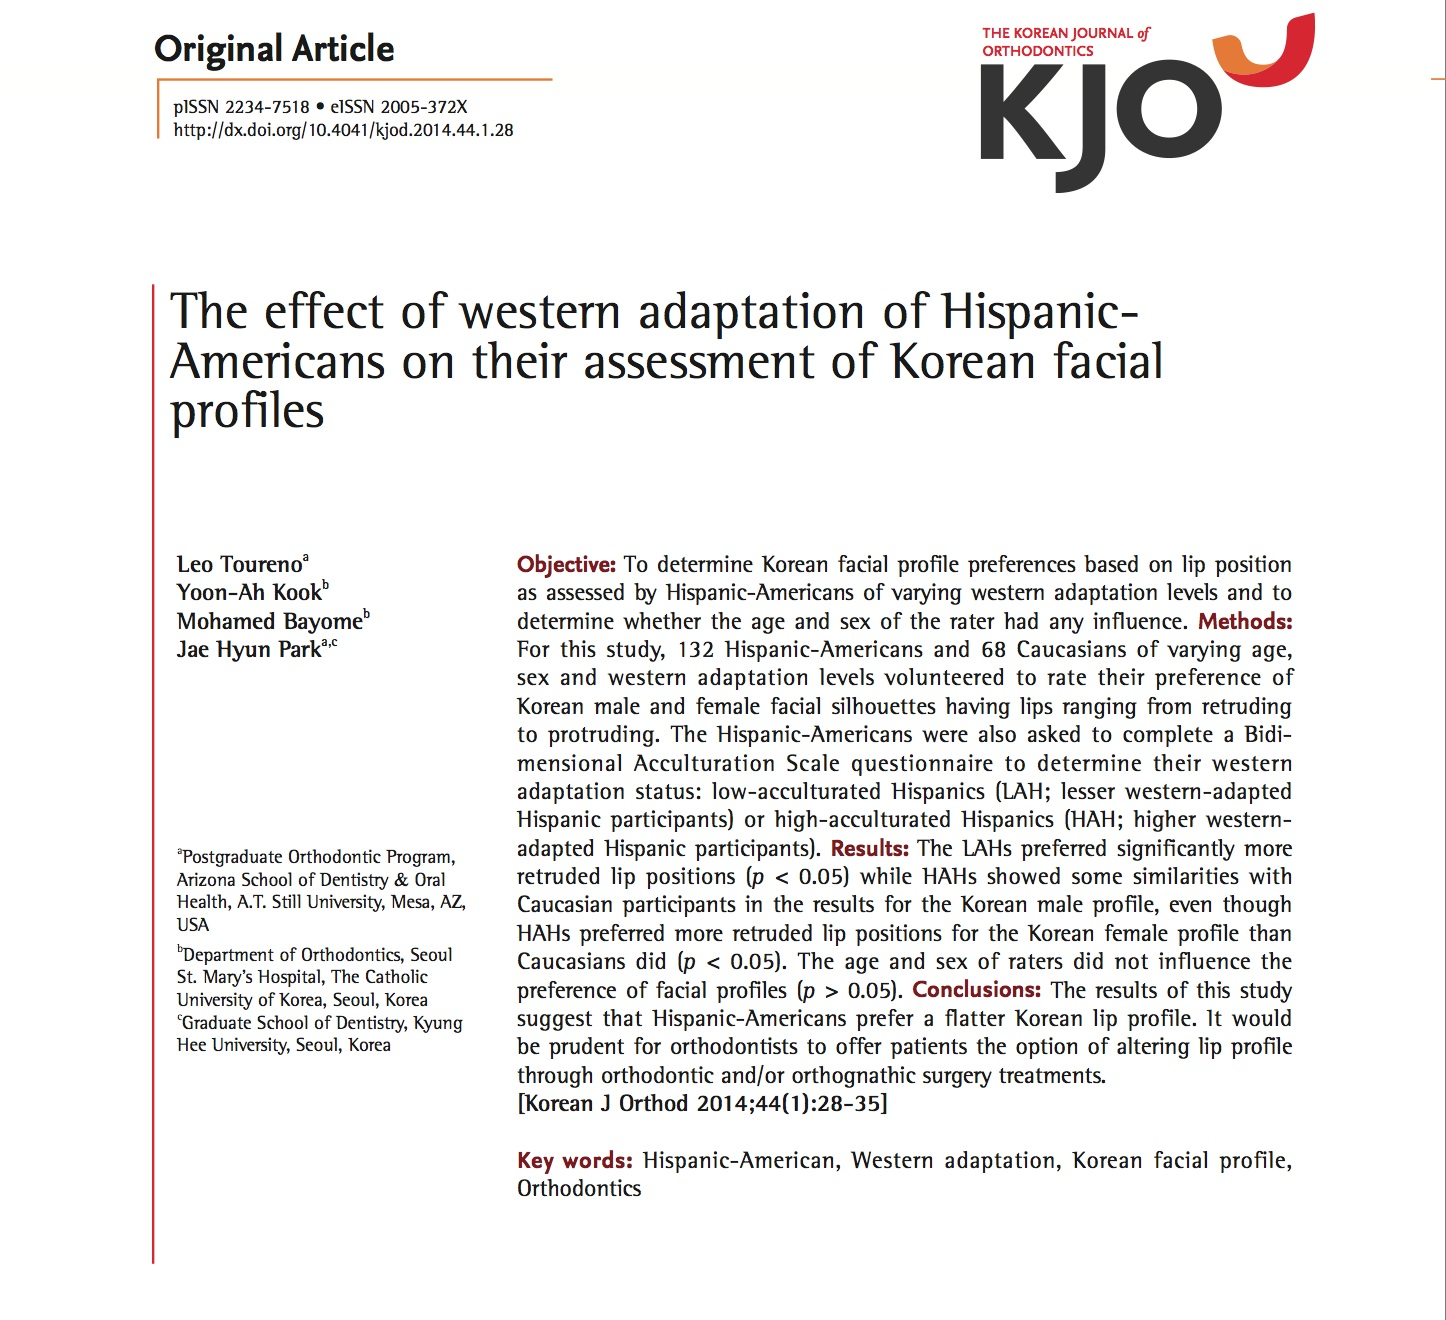 The Effect of Western Adaptation of Hispanic Americans on their Assessment of Korean Facial Profile